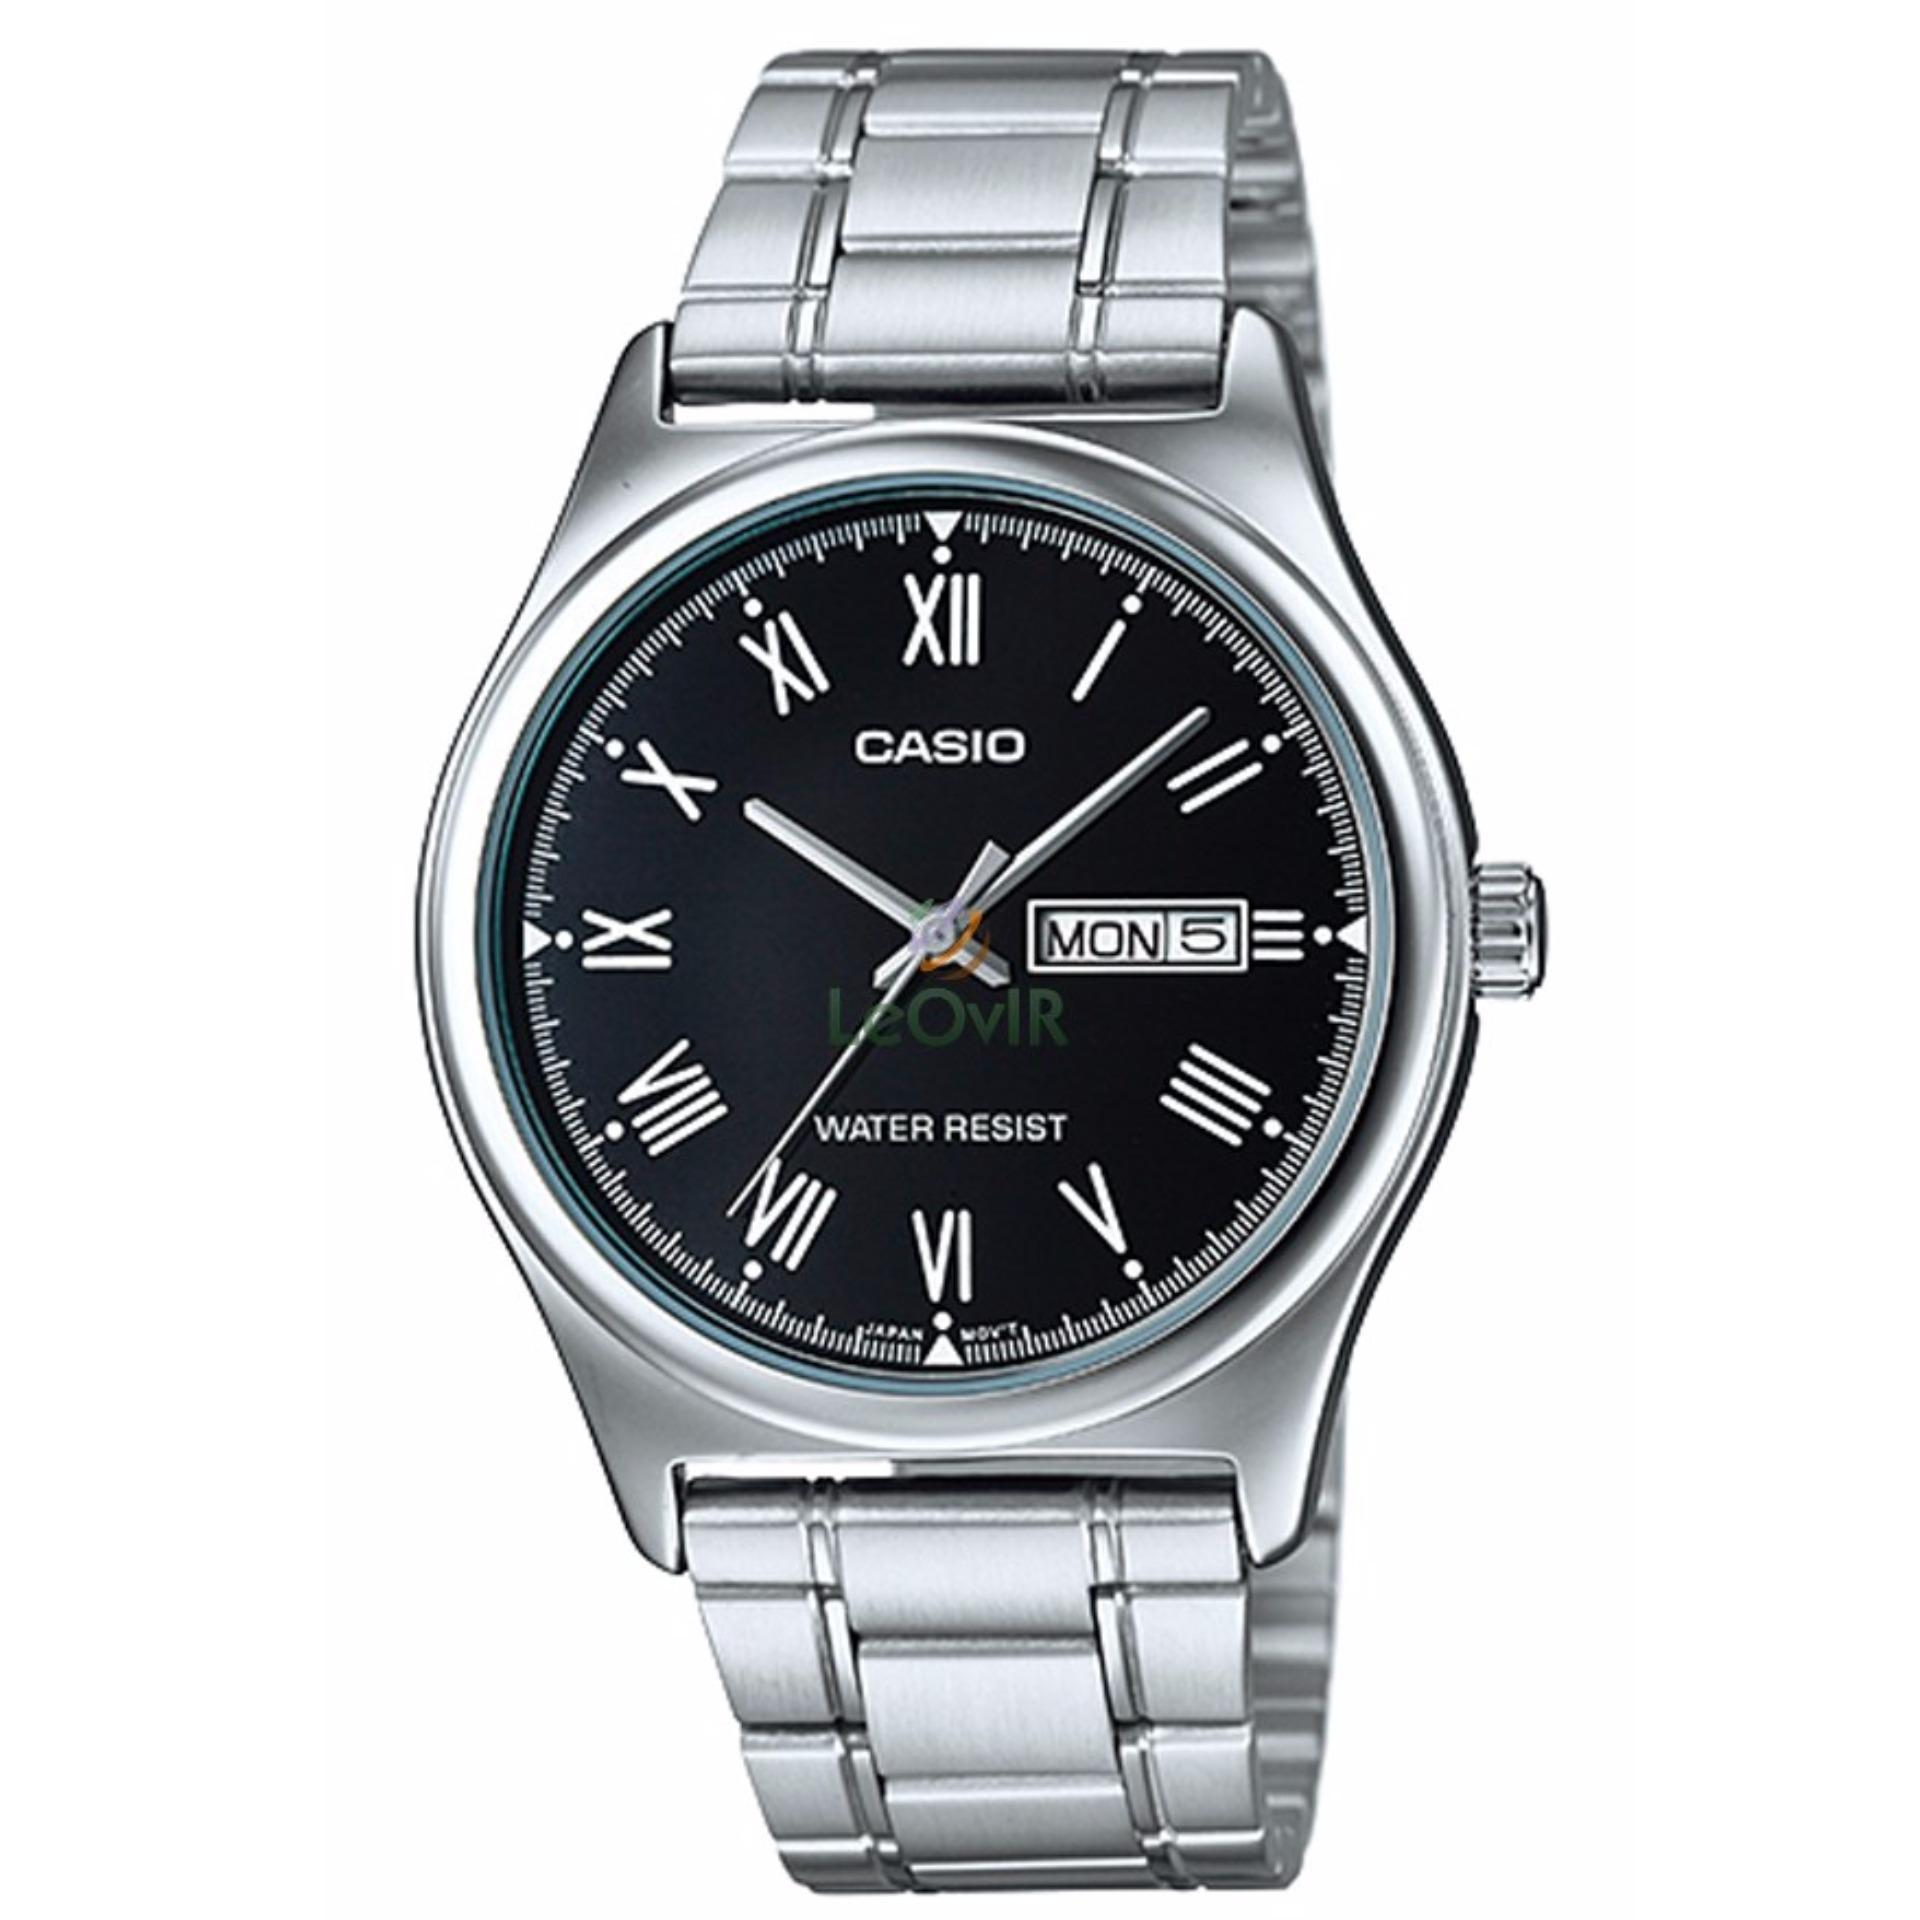 Jual Casio Standard Mtp V006D 1B Jam Tangan Pria Silver Black Strap Stainless Steel Lm Online Indonesia